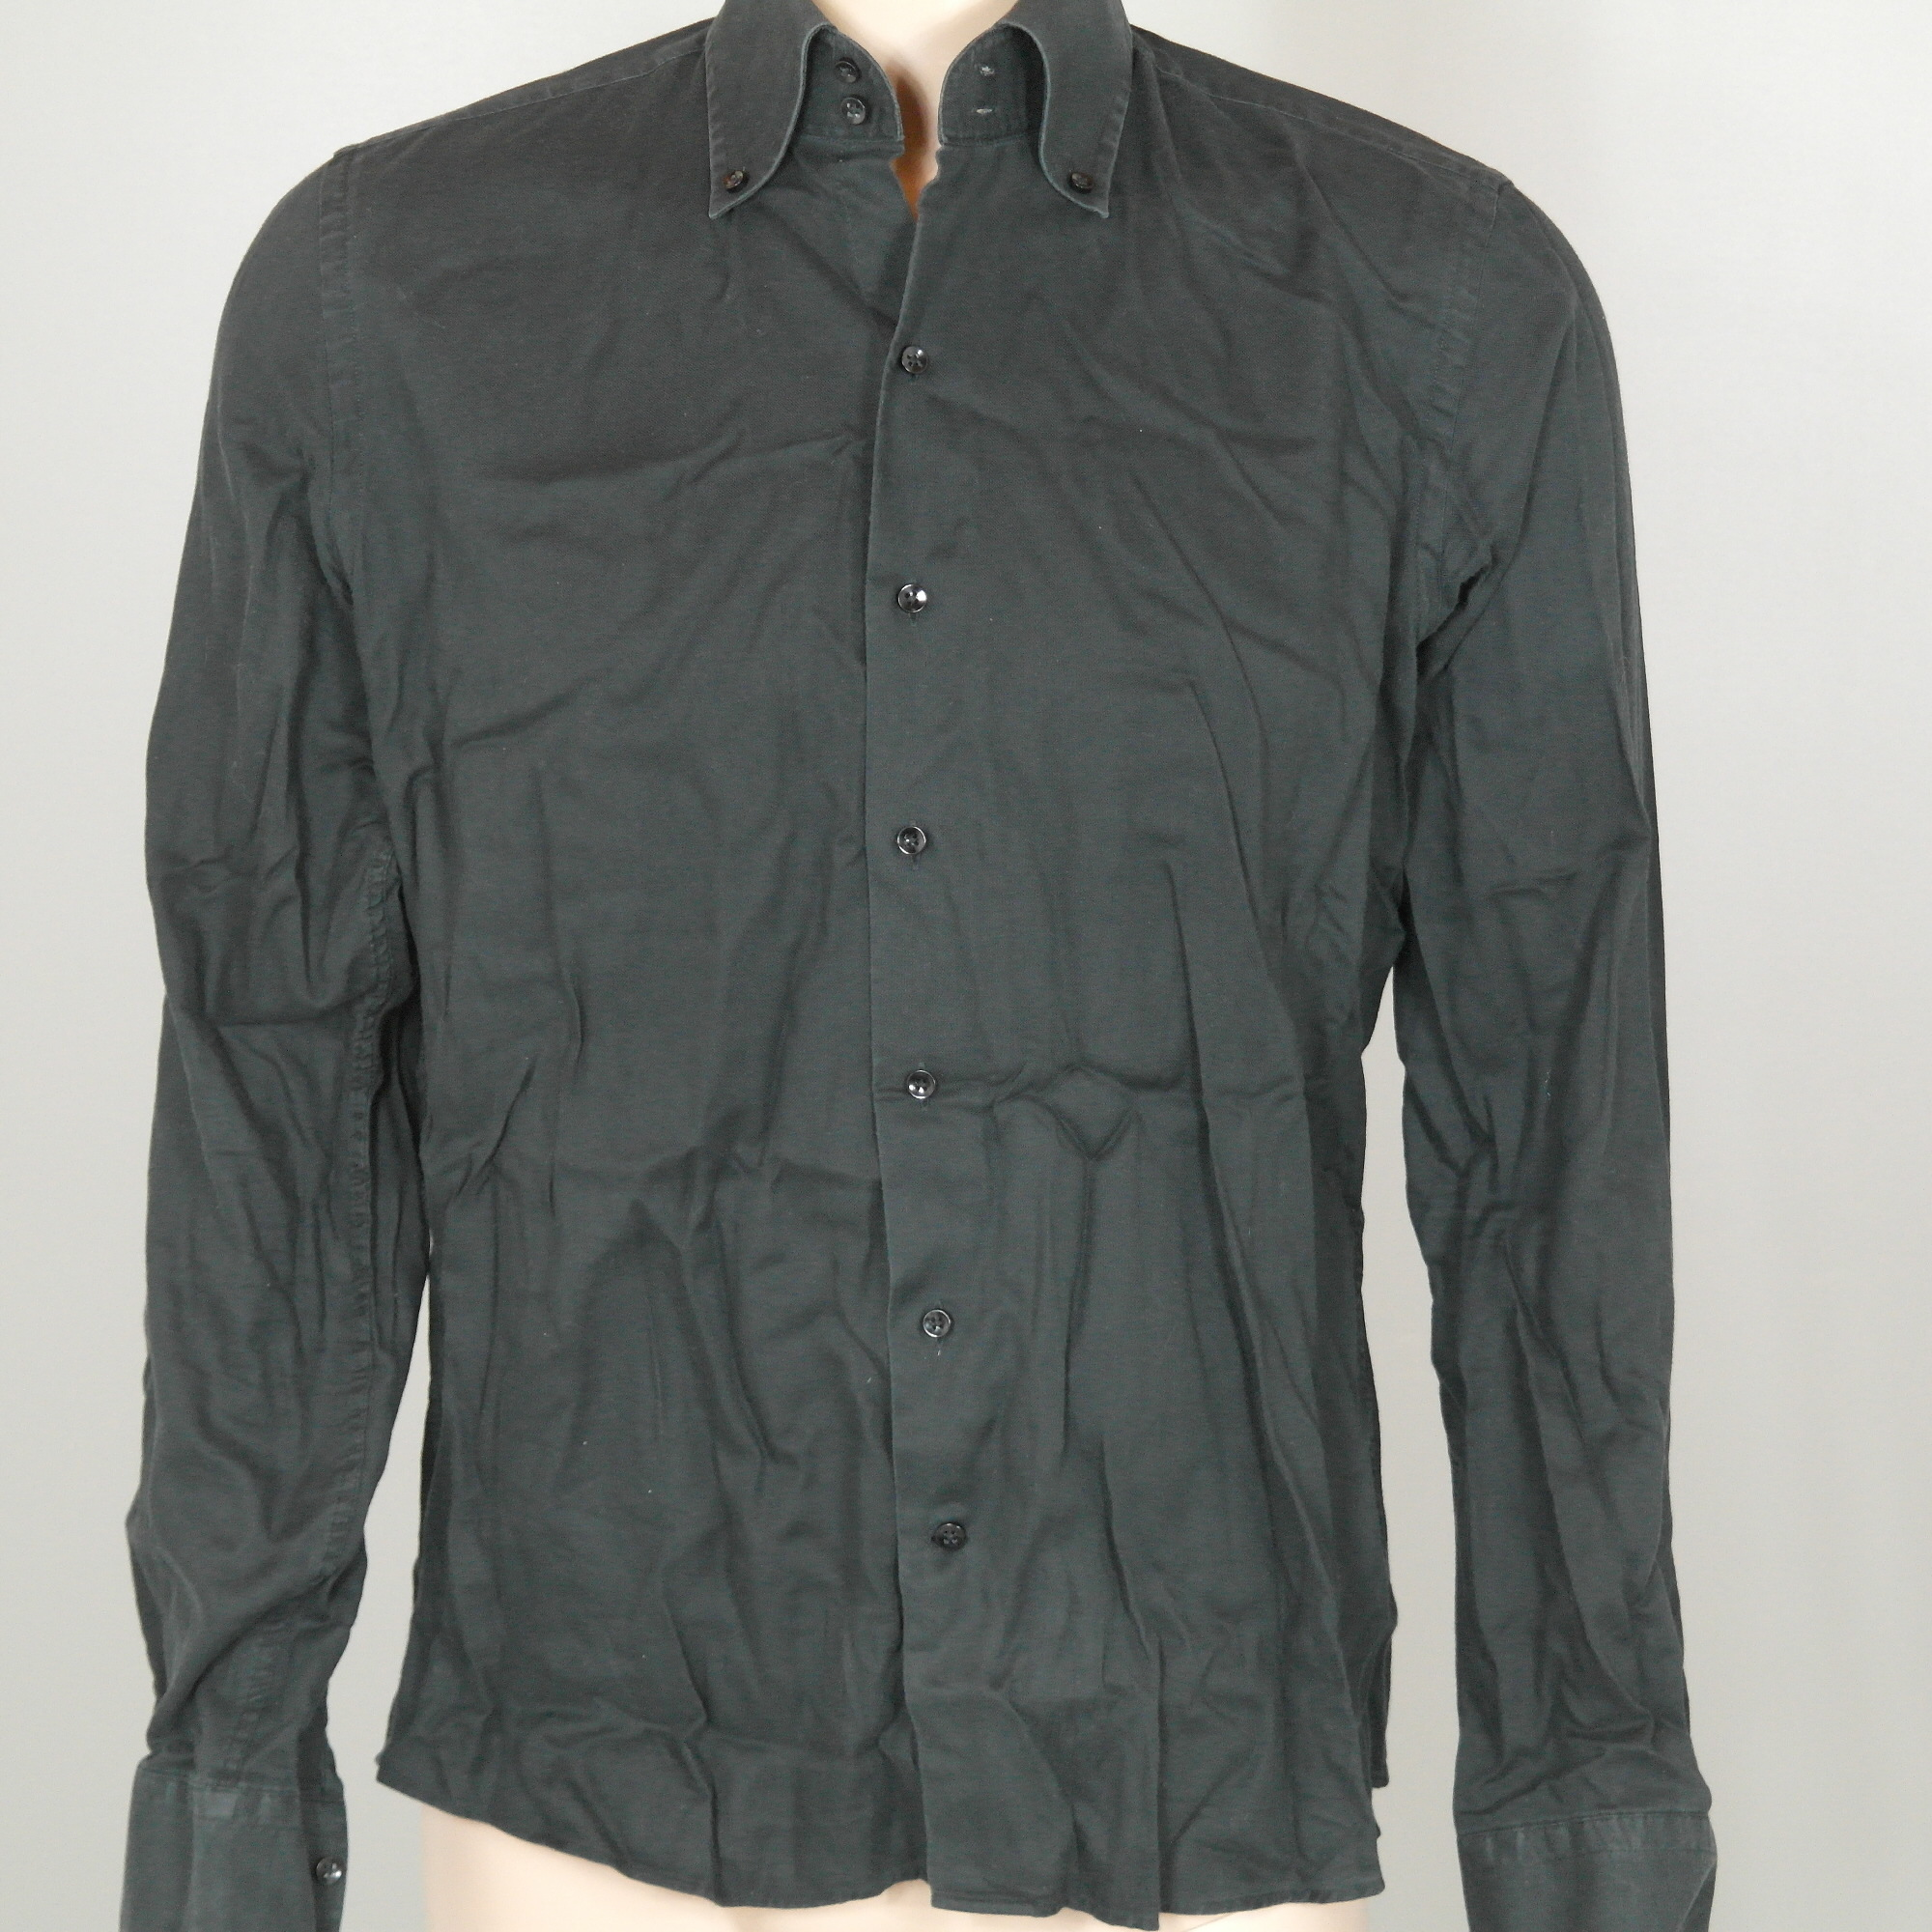 SKJORTA. 7 Camicie. Large. Vintage clothing & Accessories